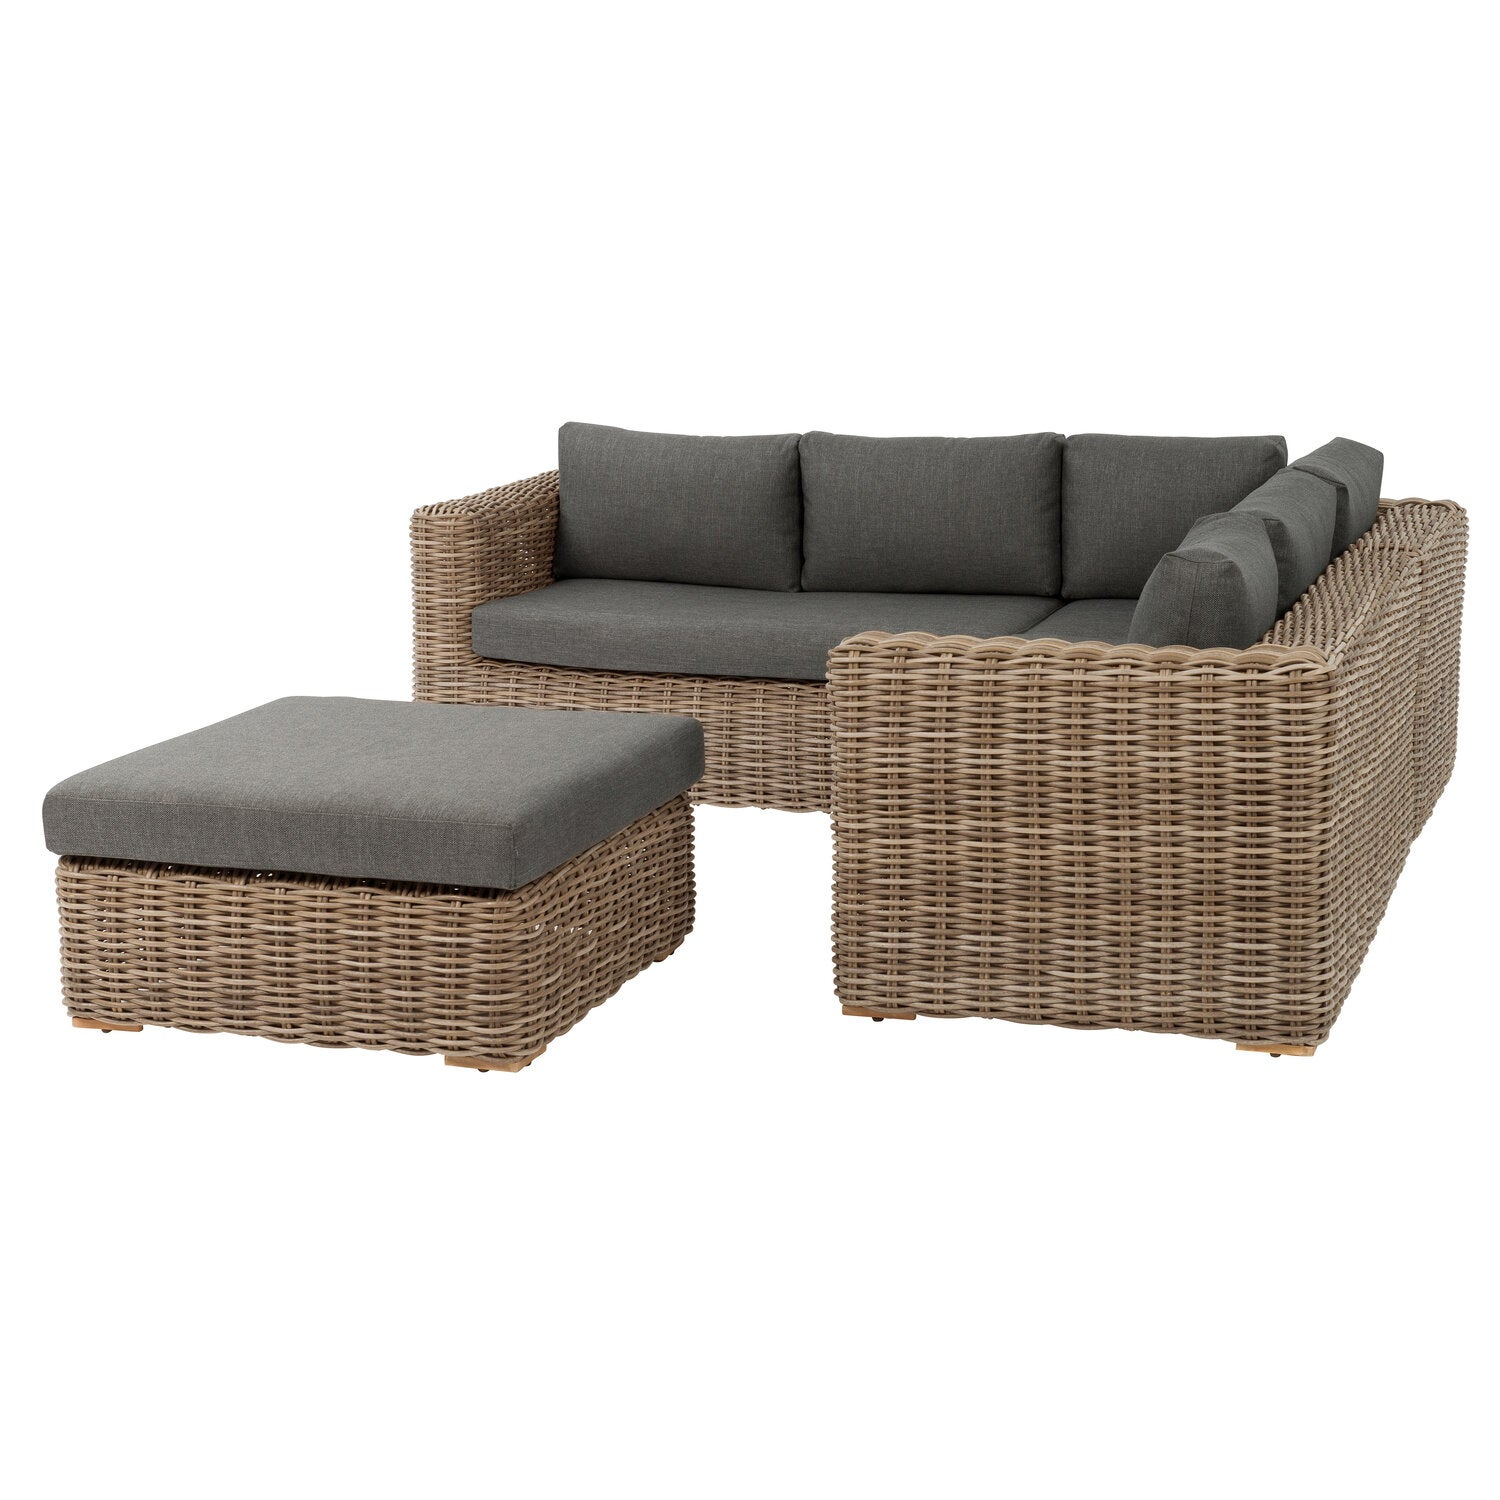 Intratuin 6-zits loungeset Royal wicker naturel